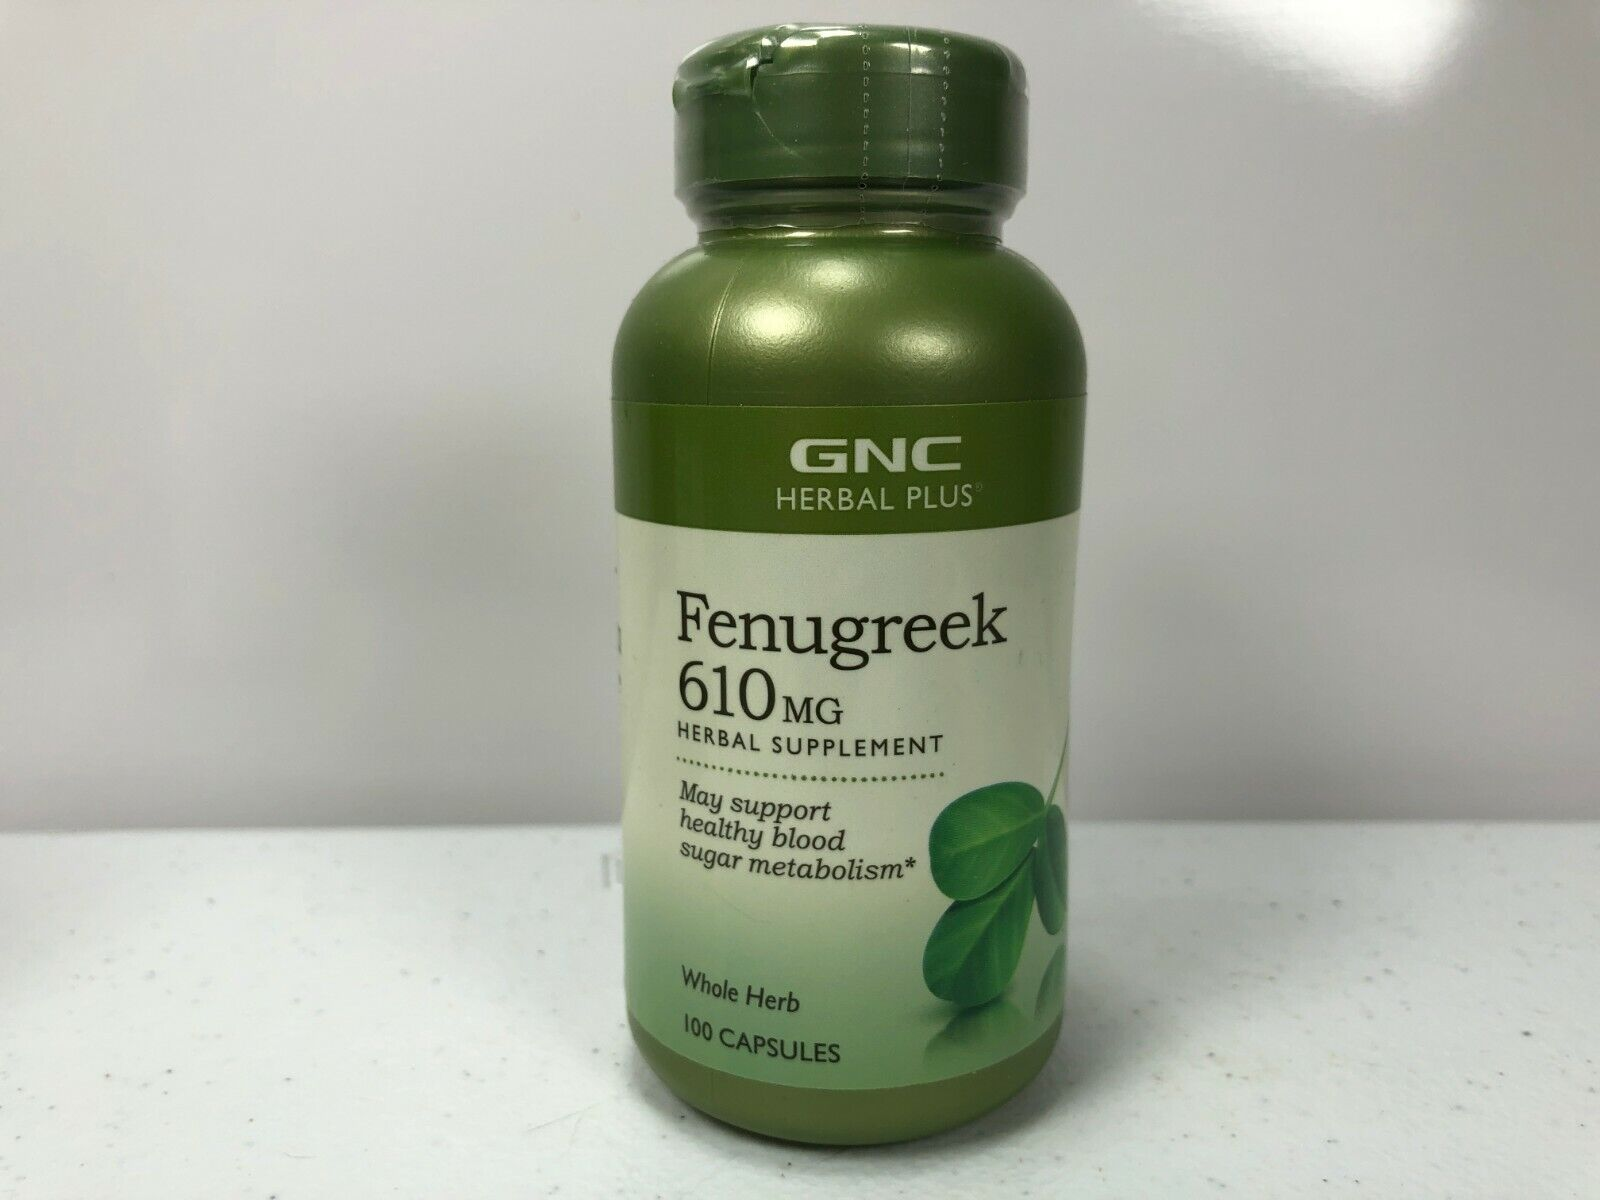 GNC Herbal Plus Fenugreek Herbal Supplement 610 mg 100 Capsu